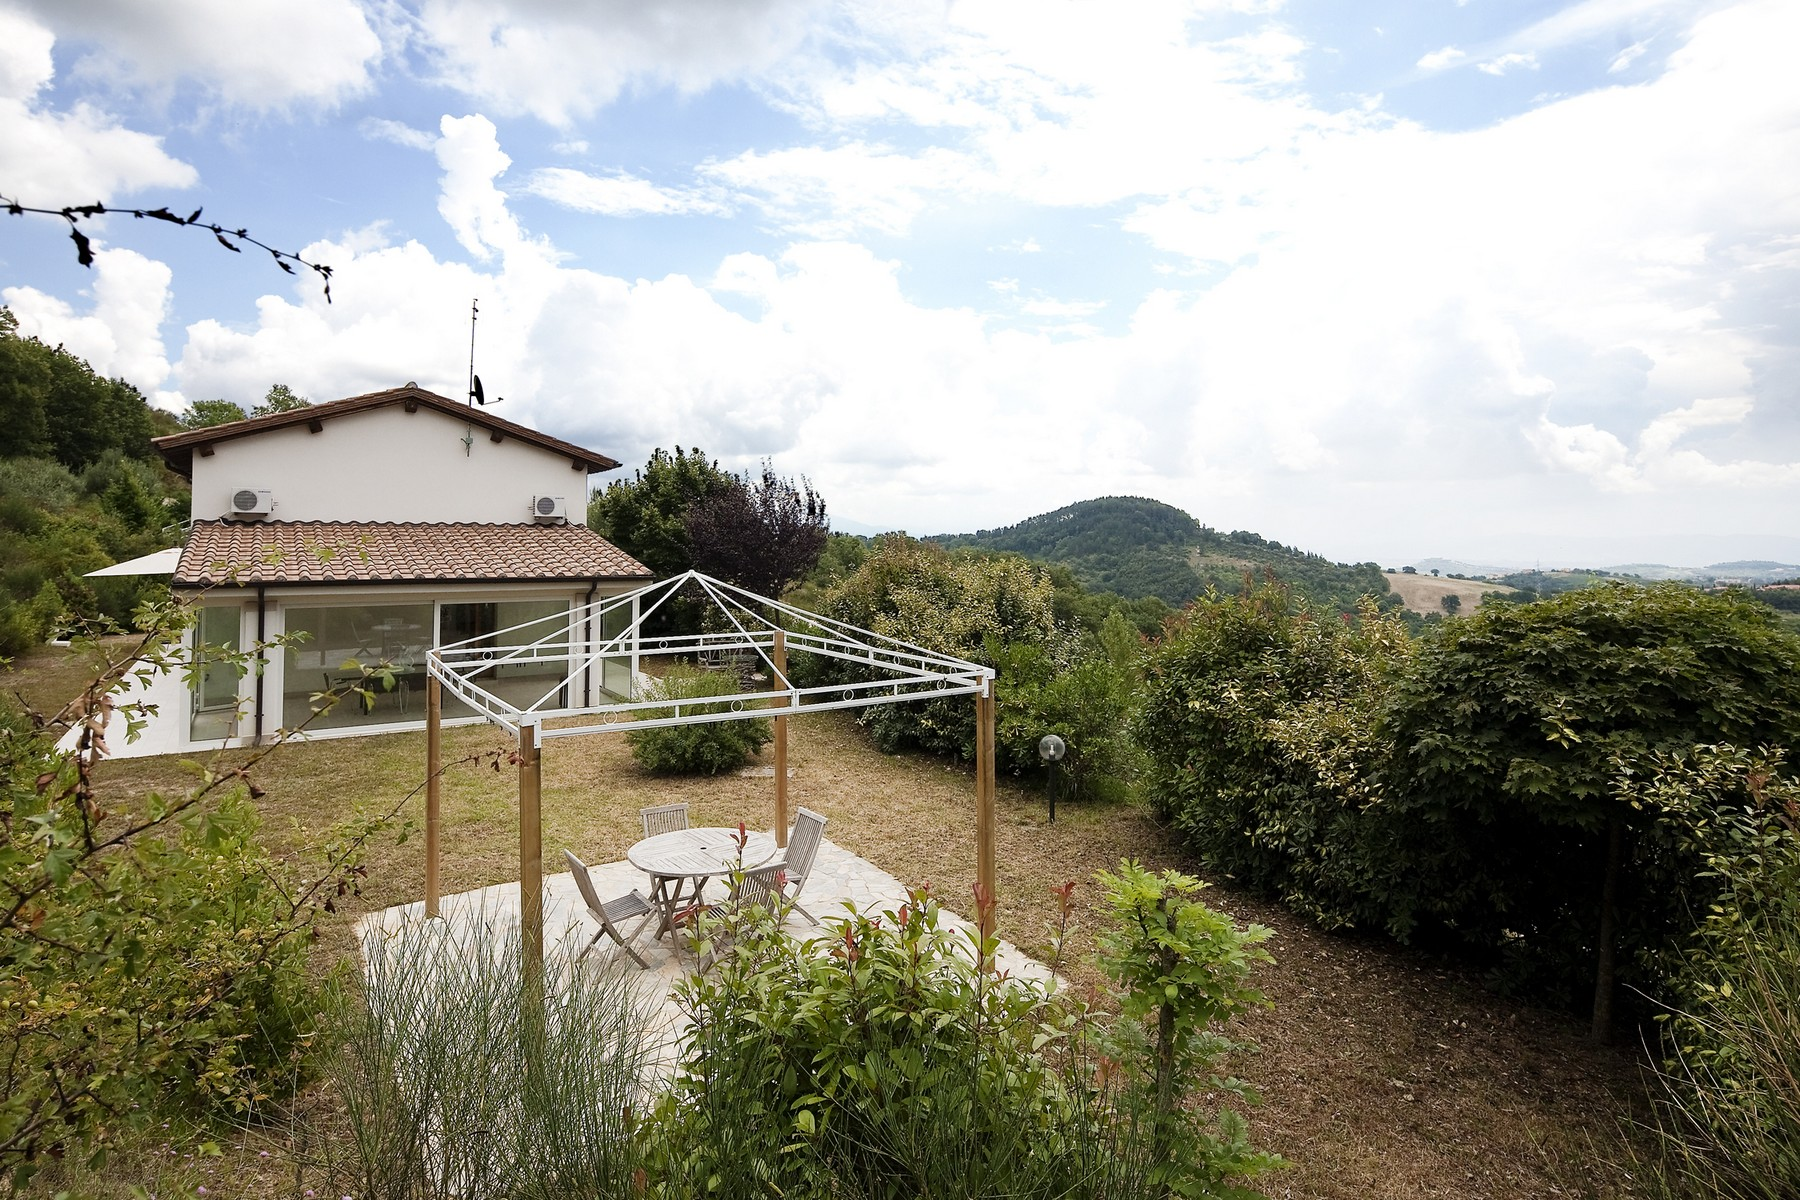 Additional photo for property listing at Design house overlooking Perugia Montelaguardia Perugia, Perugia 06135 Italien